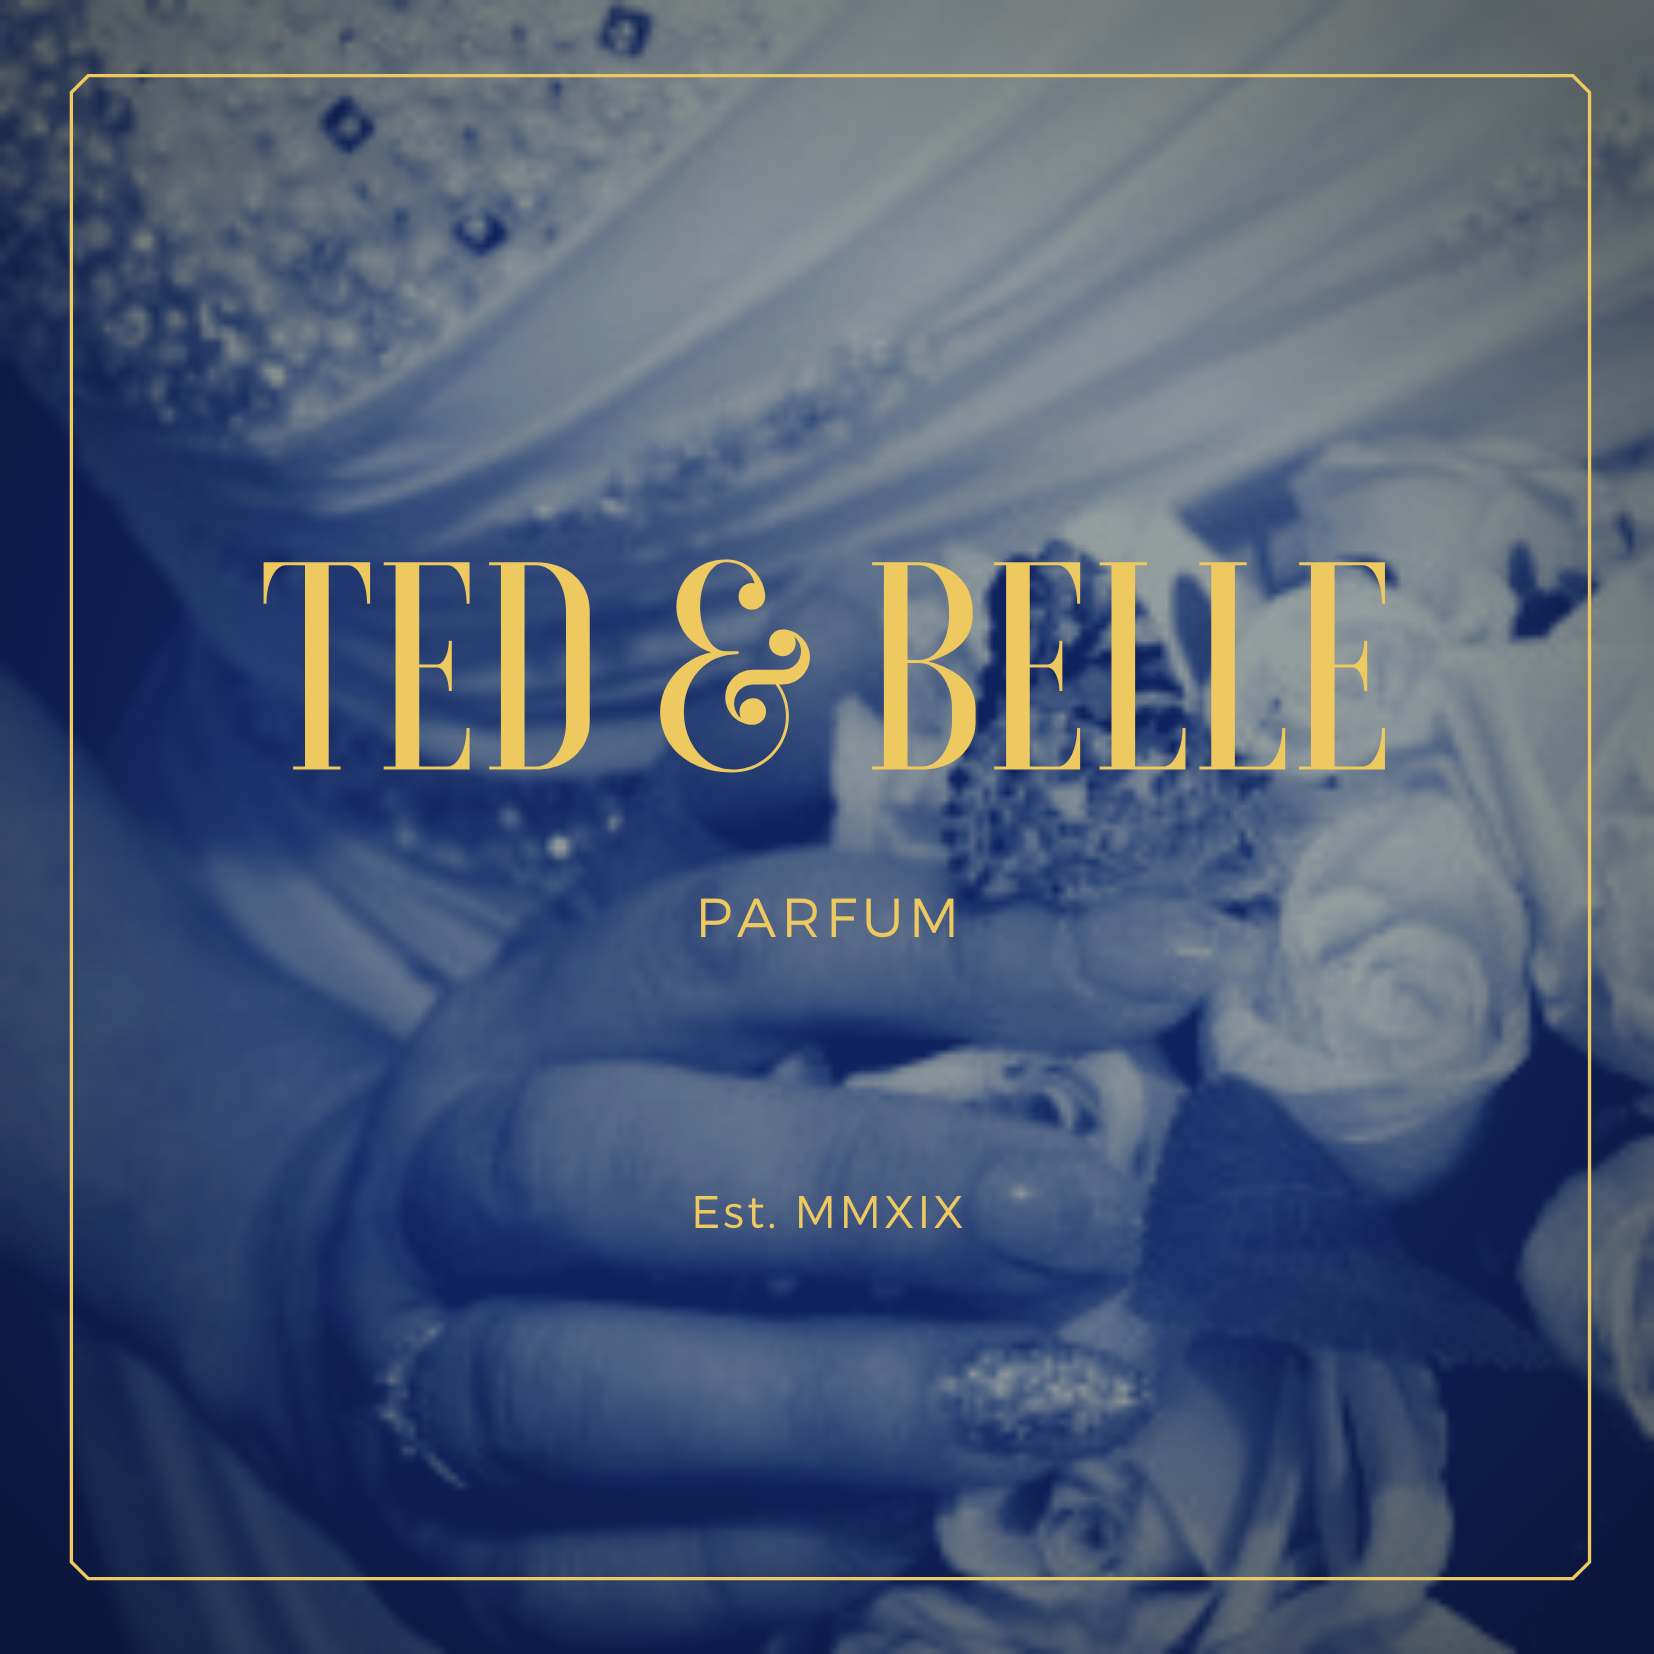 Ted and Belle